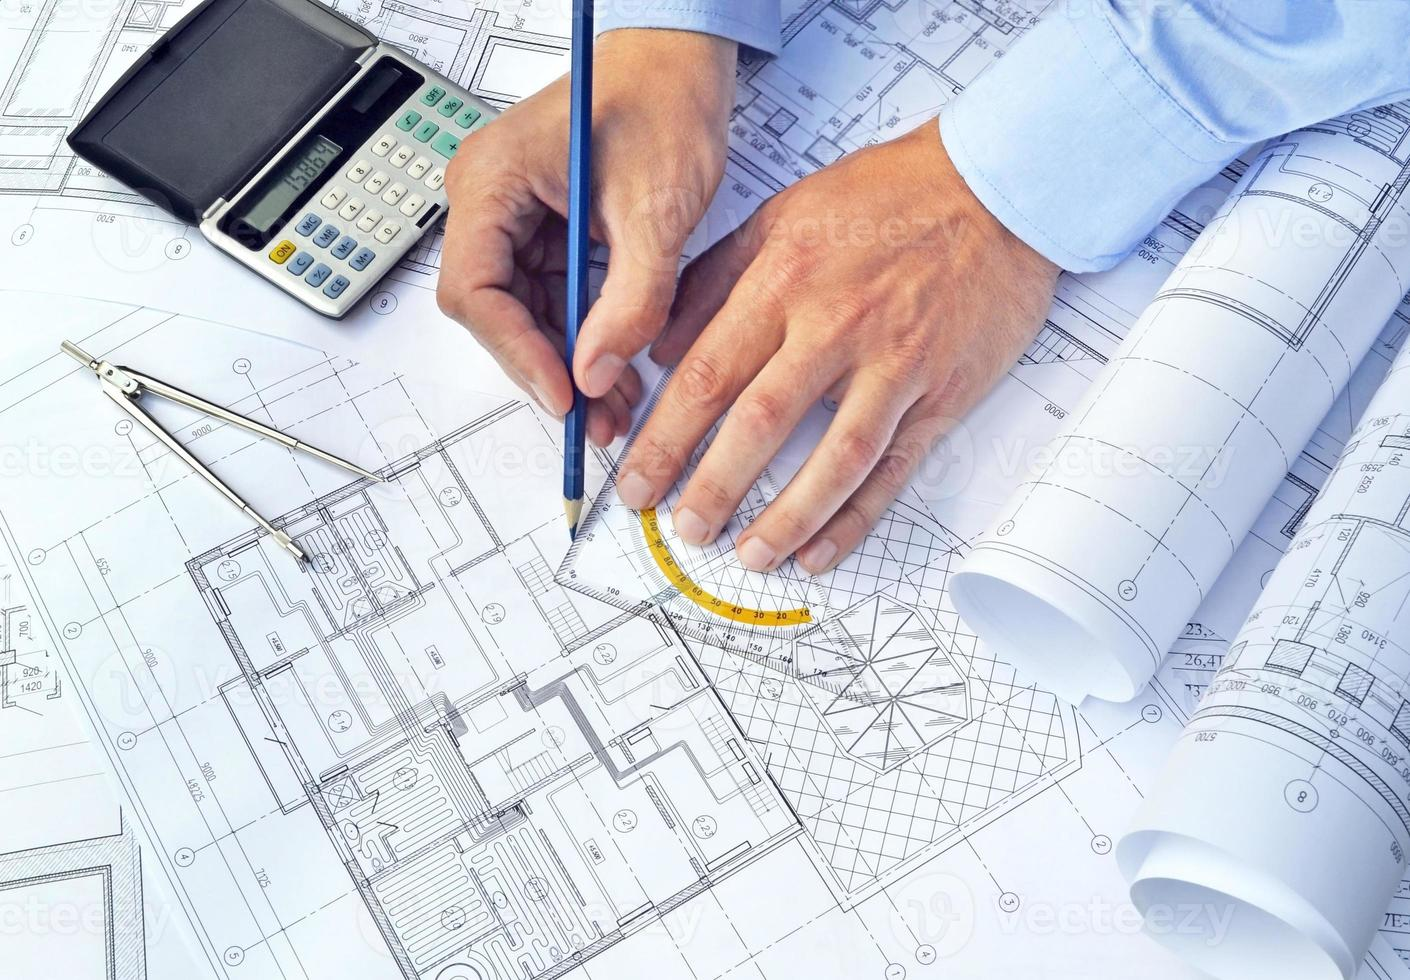 Hands with tool and project drawings photo